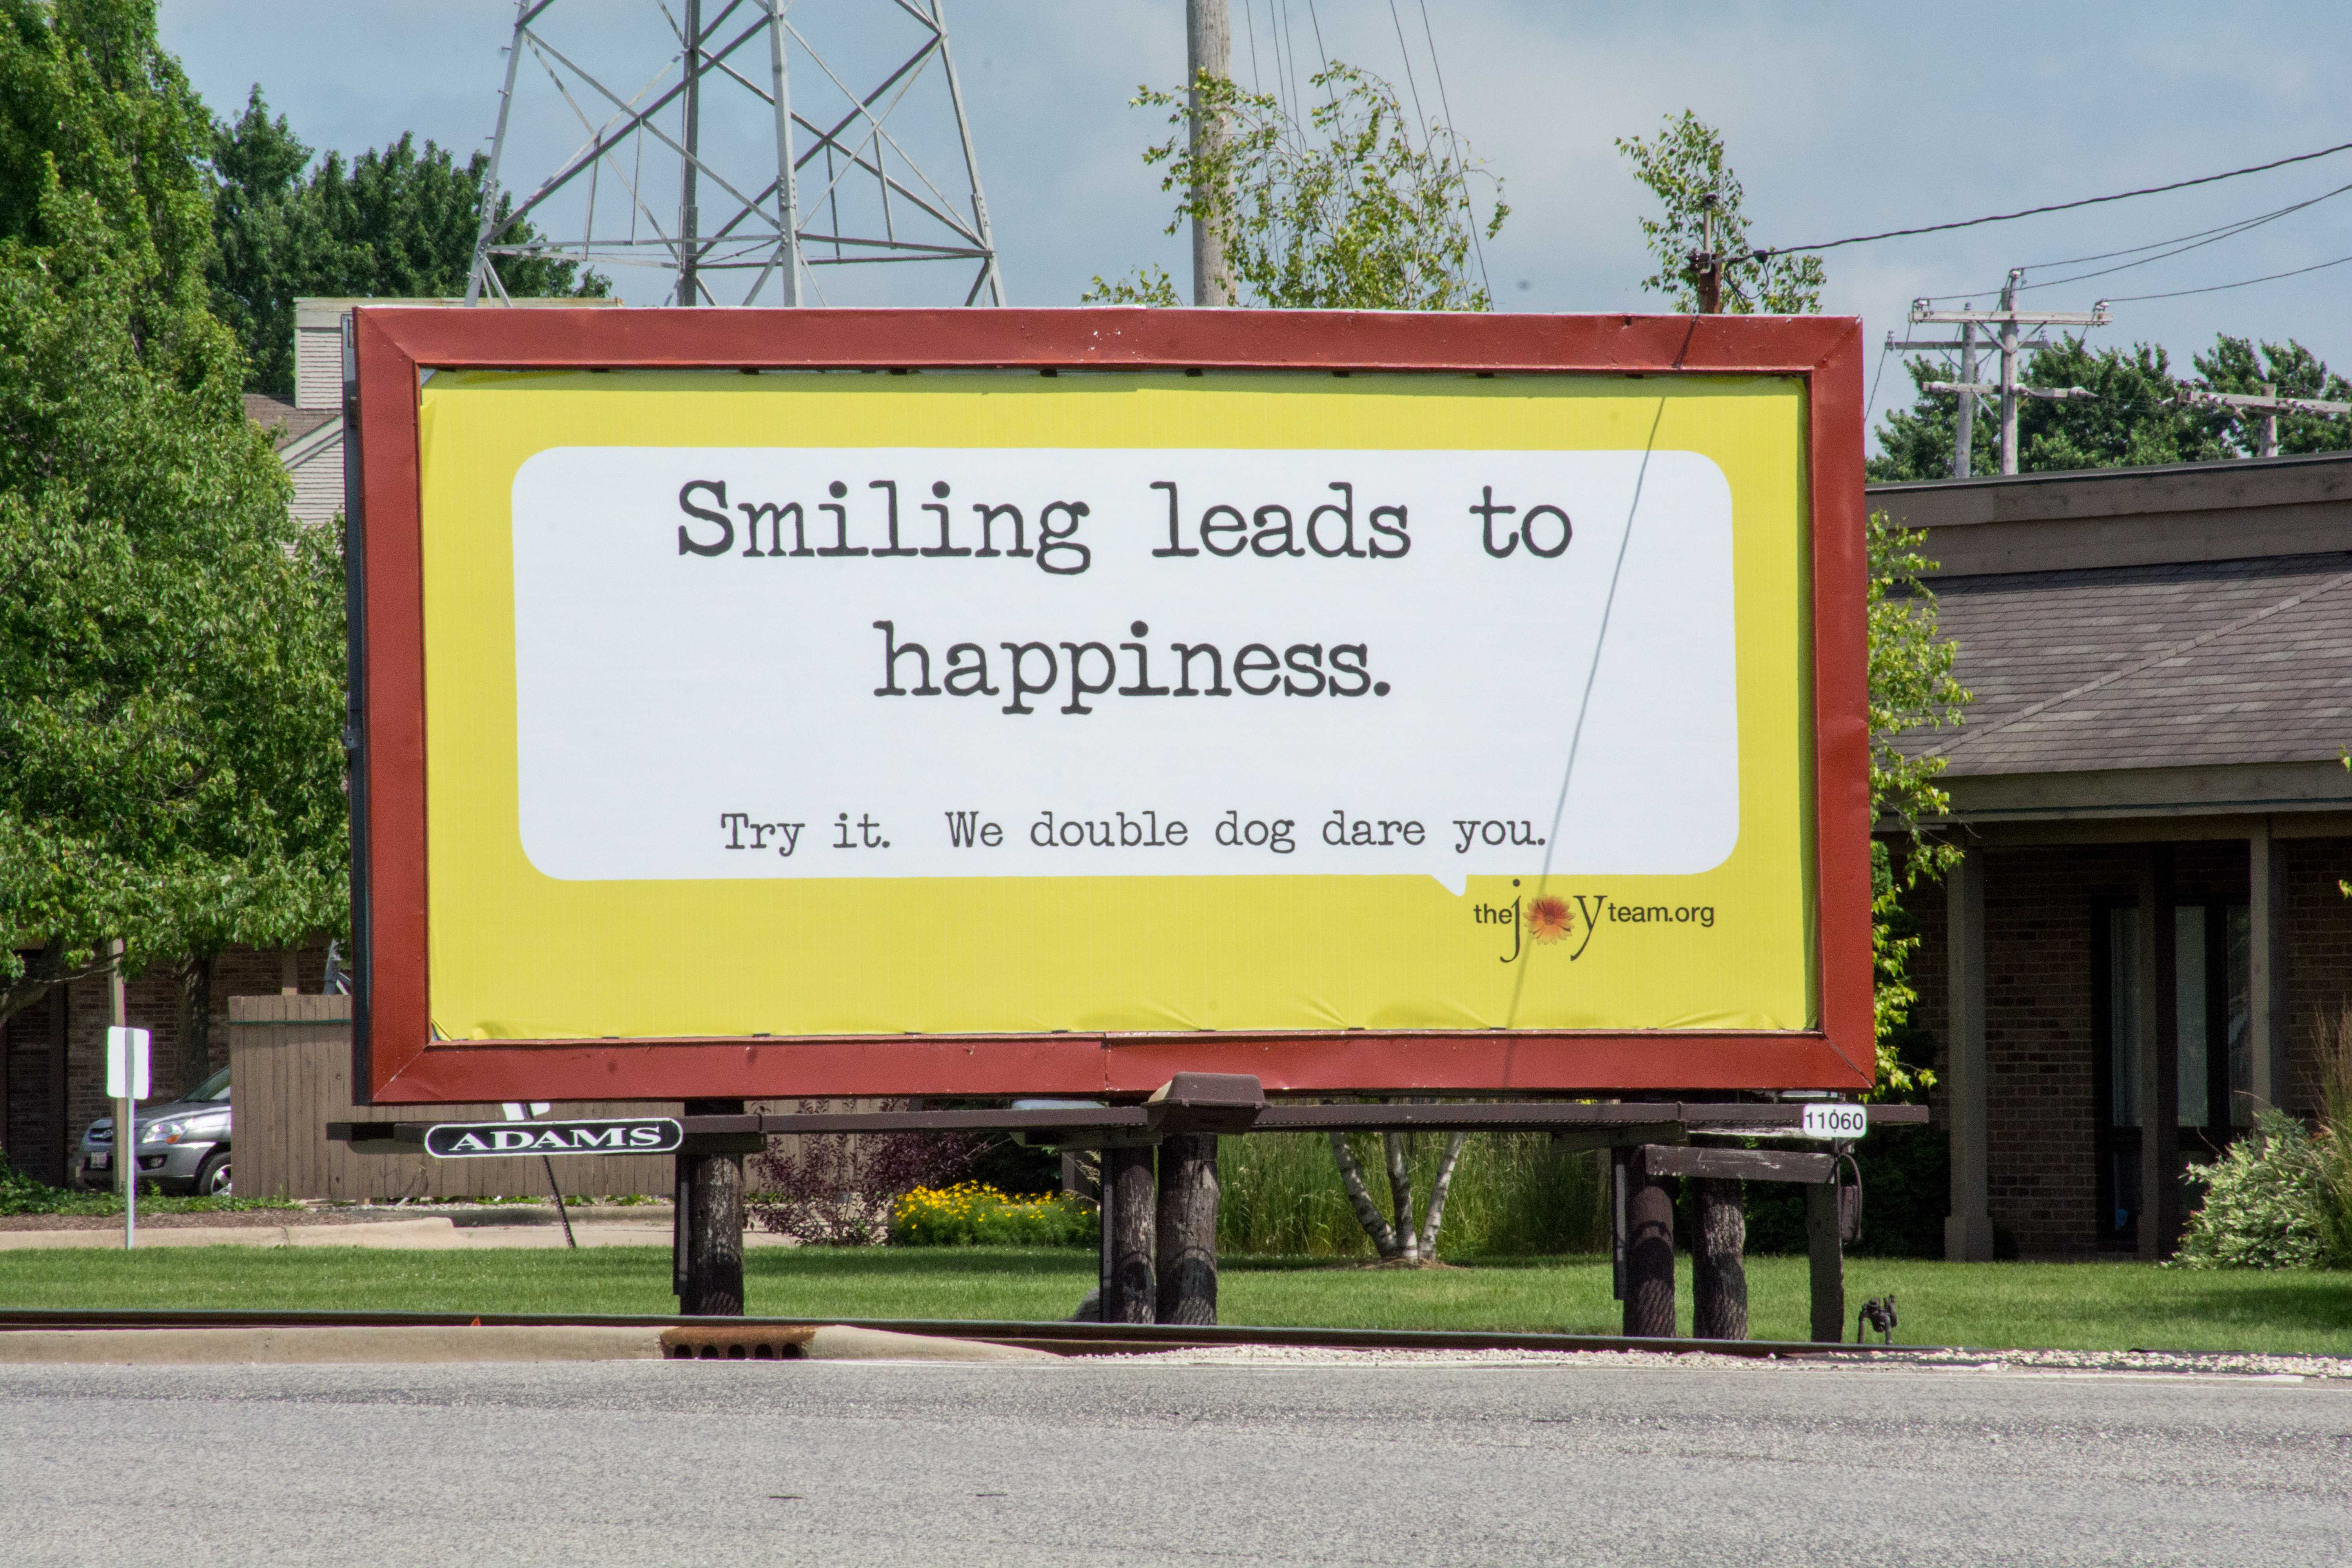 The new inspiring billboard at the corner of Springfield Avenue and Duncan Road in Champaign on Saturday, June 20.